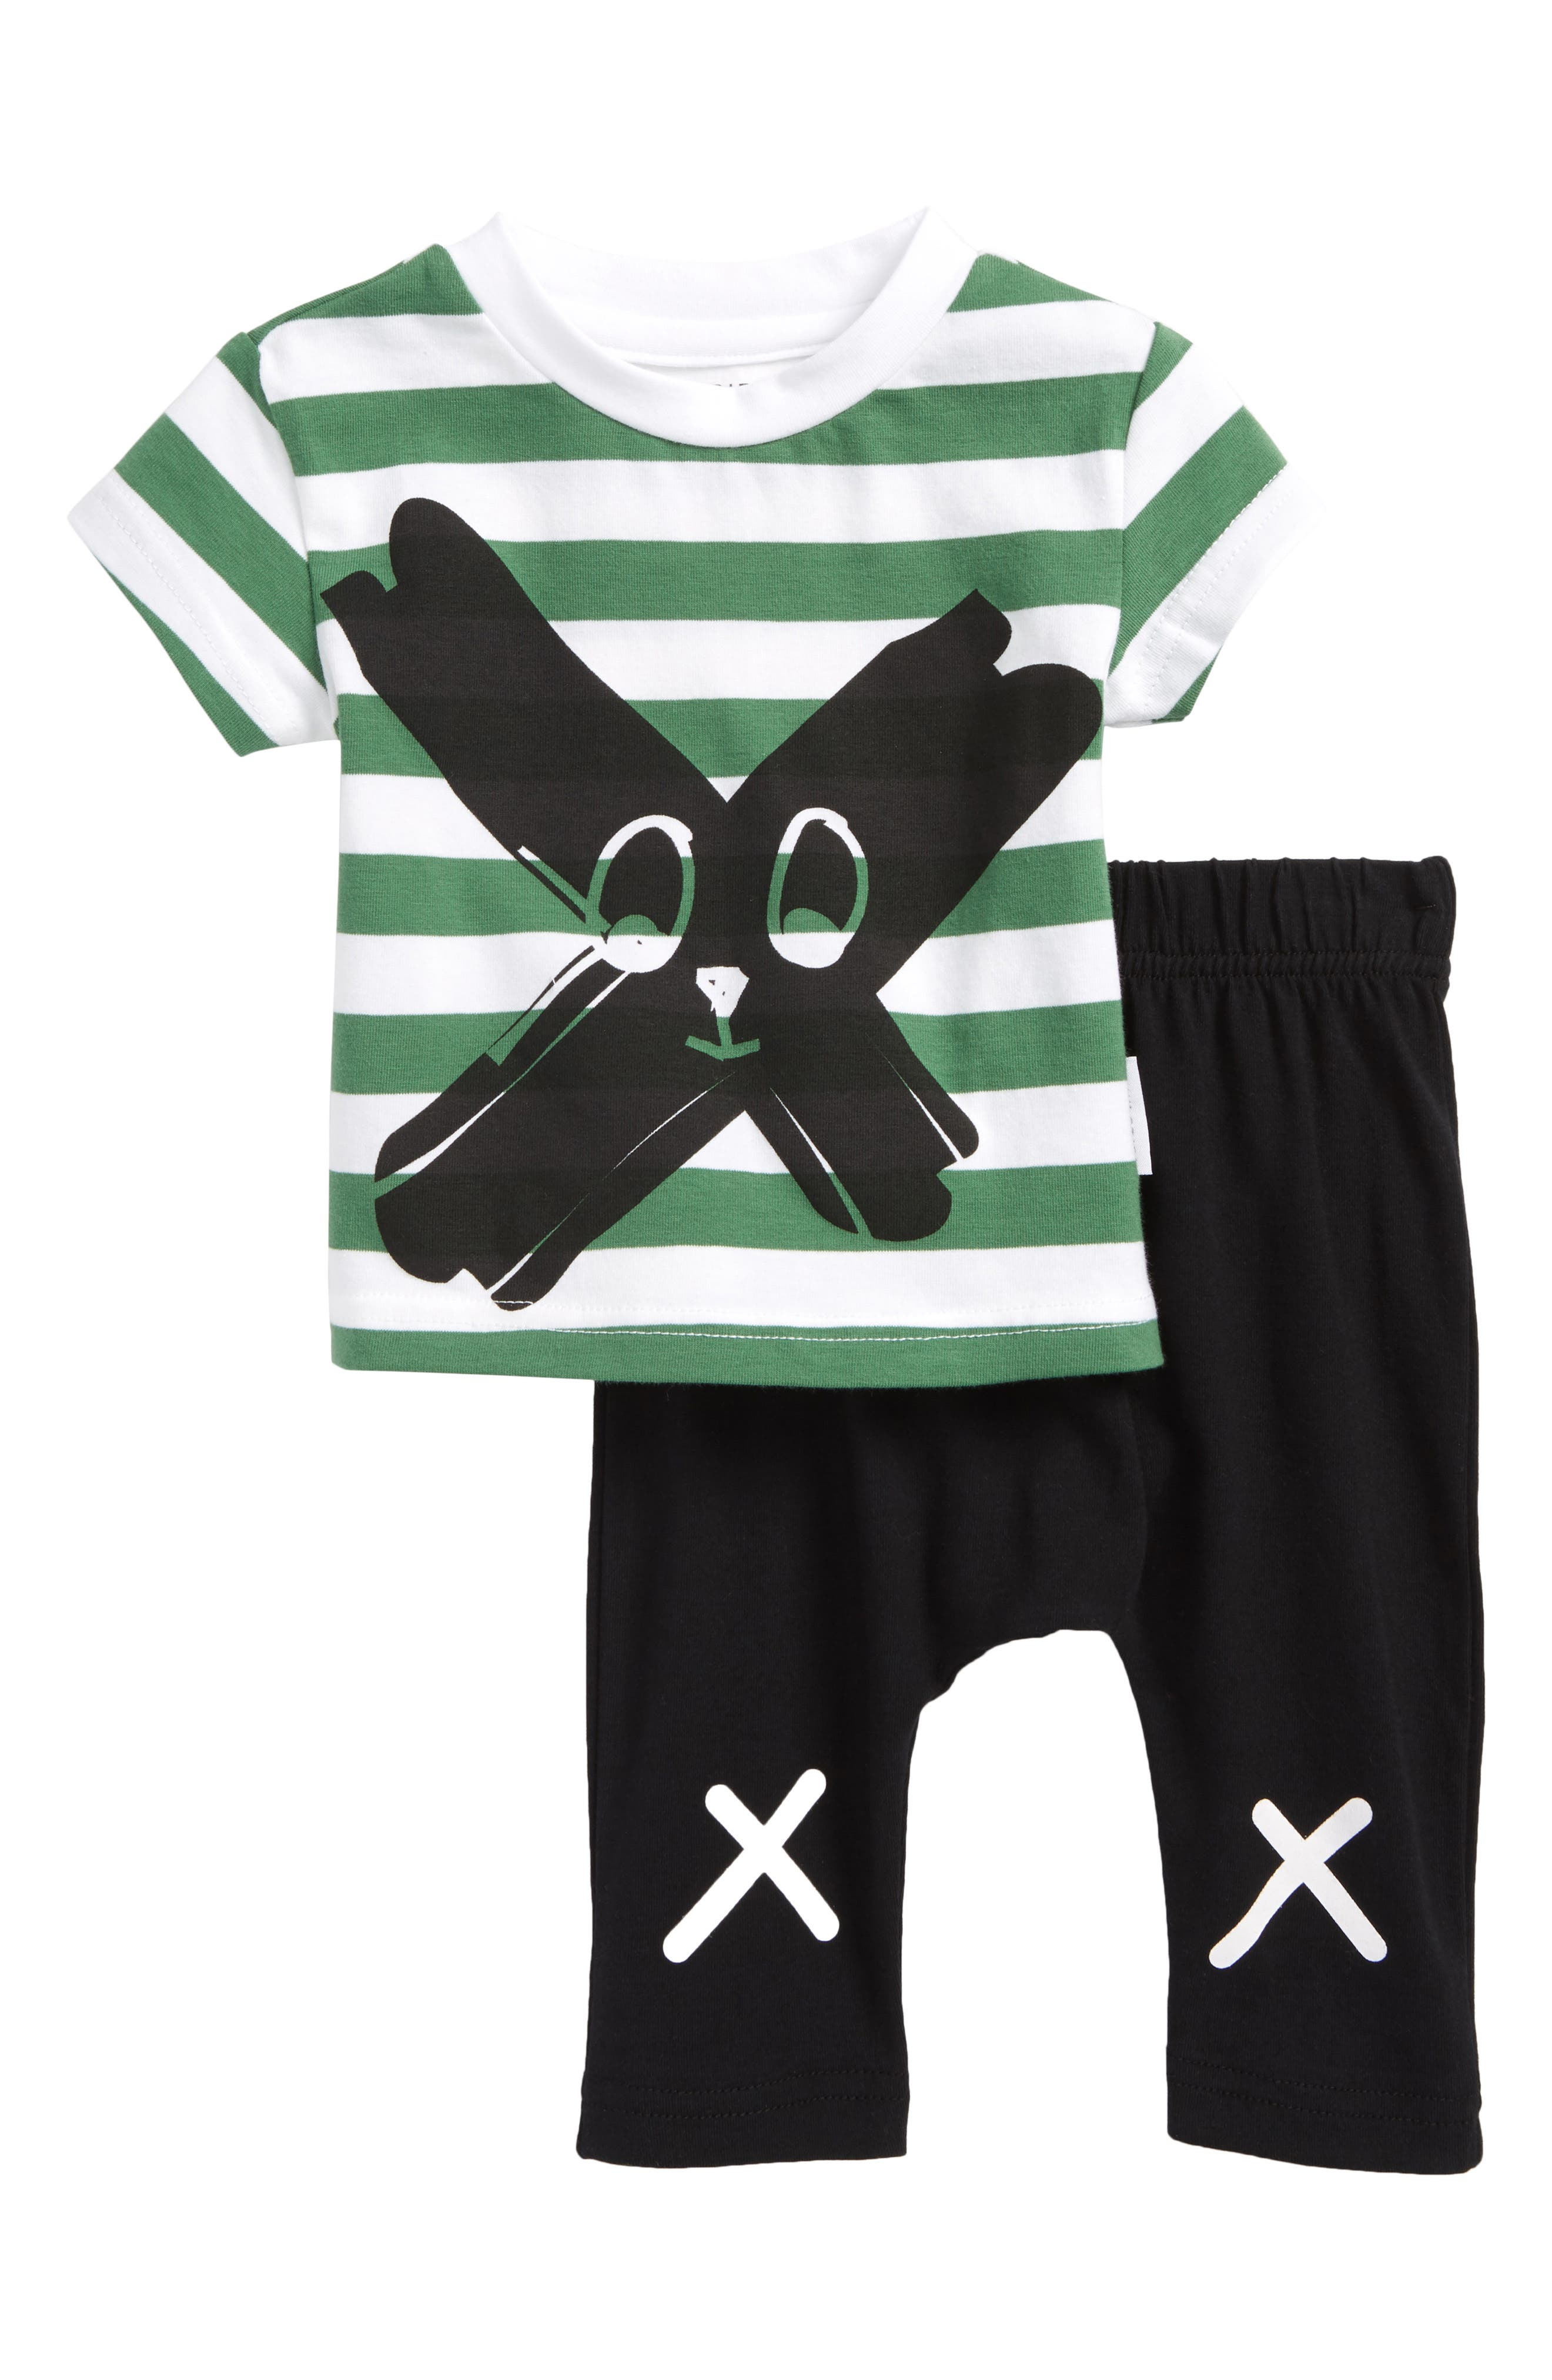 Alternate Image 1 Selected - Tiny Tribe Face Paint T-Shirt & Pants Set (Baby)